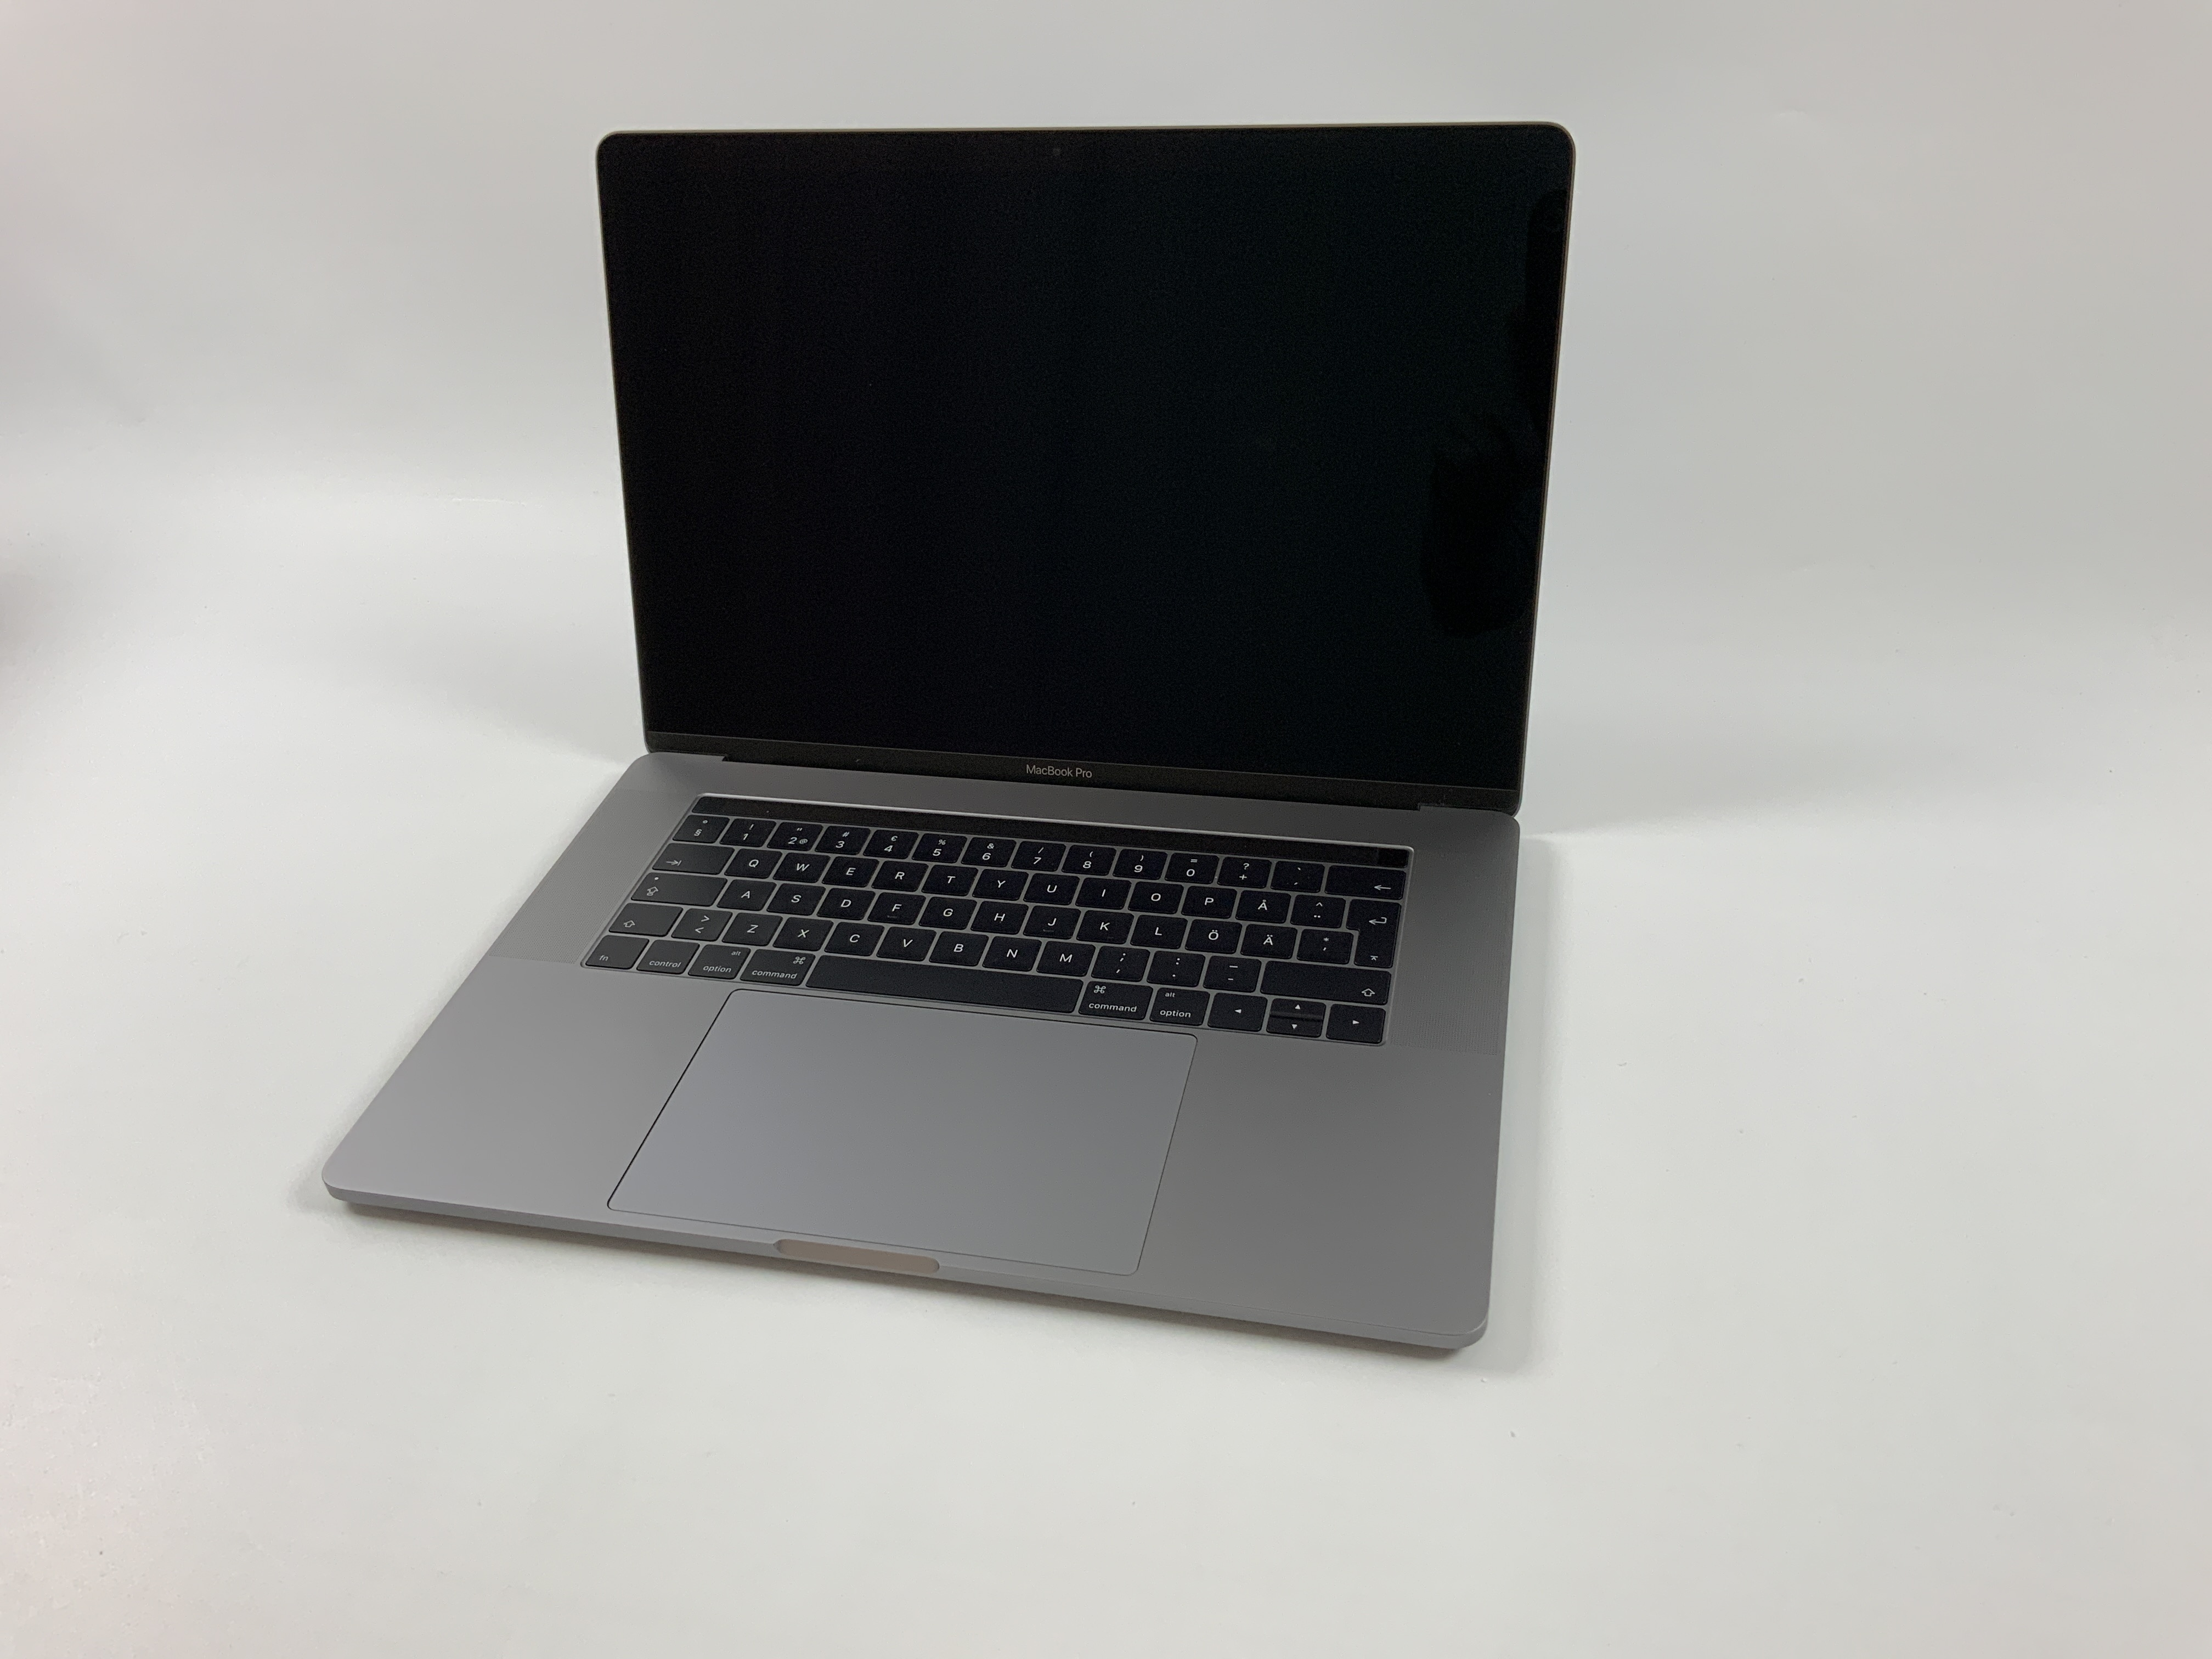 "MacBook Pro 15"" Touch Bar Late 2016 (Intel Quad-Core i7 2.6 GHz 16 GB RAM 512 GB SSD), Space Gray, Intel Quad-Core i7 2.6 GHz, 16 GB RAM, 512 GB SSD, image 1"